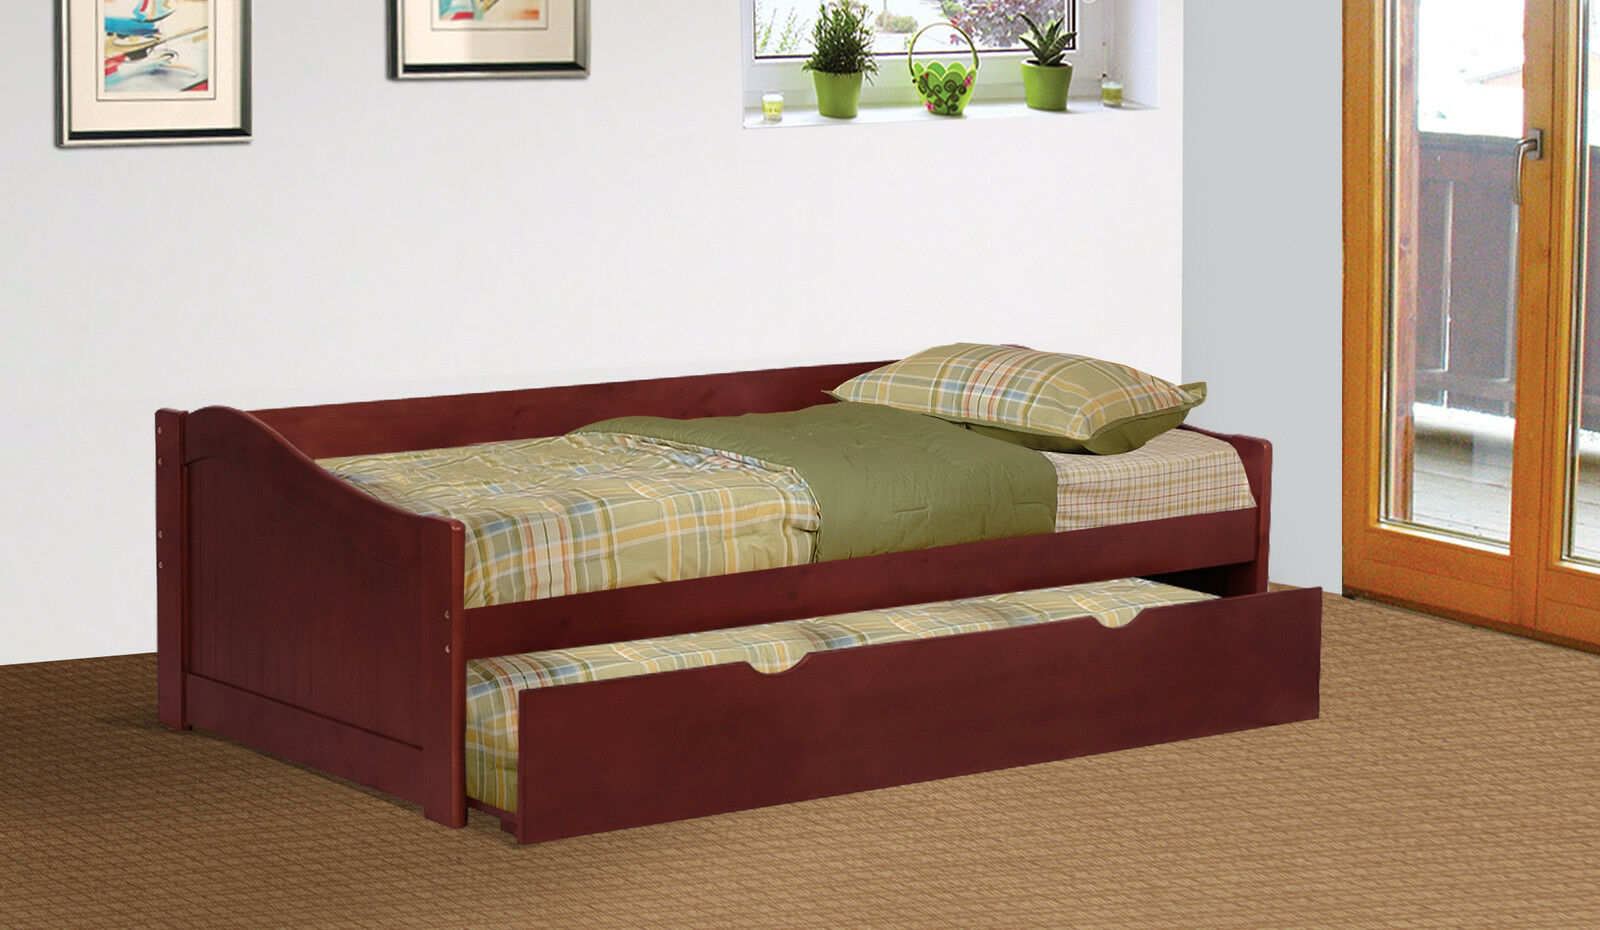 cherry finish wood twin size day bed daybed with trundle new ebay. Black Bedroom Furniture Sets. Home Design Ideas